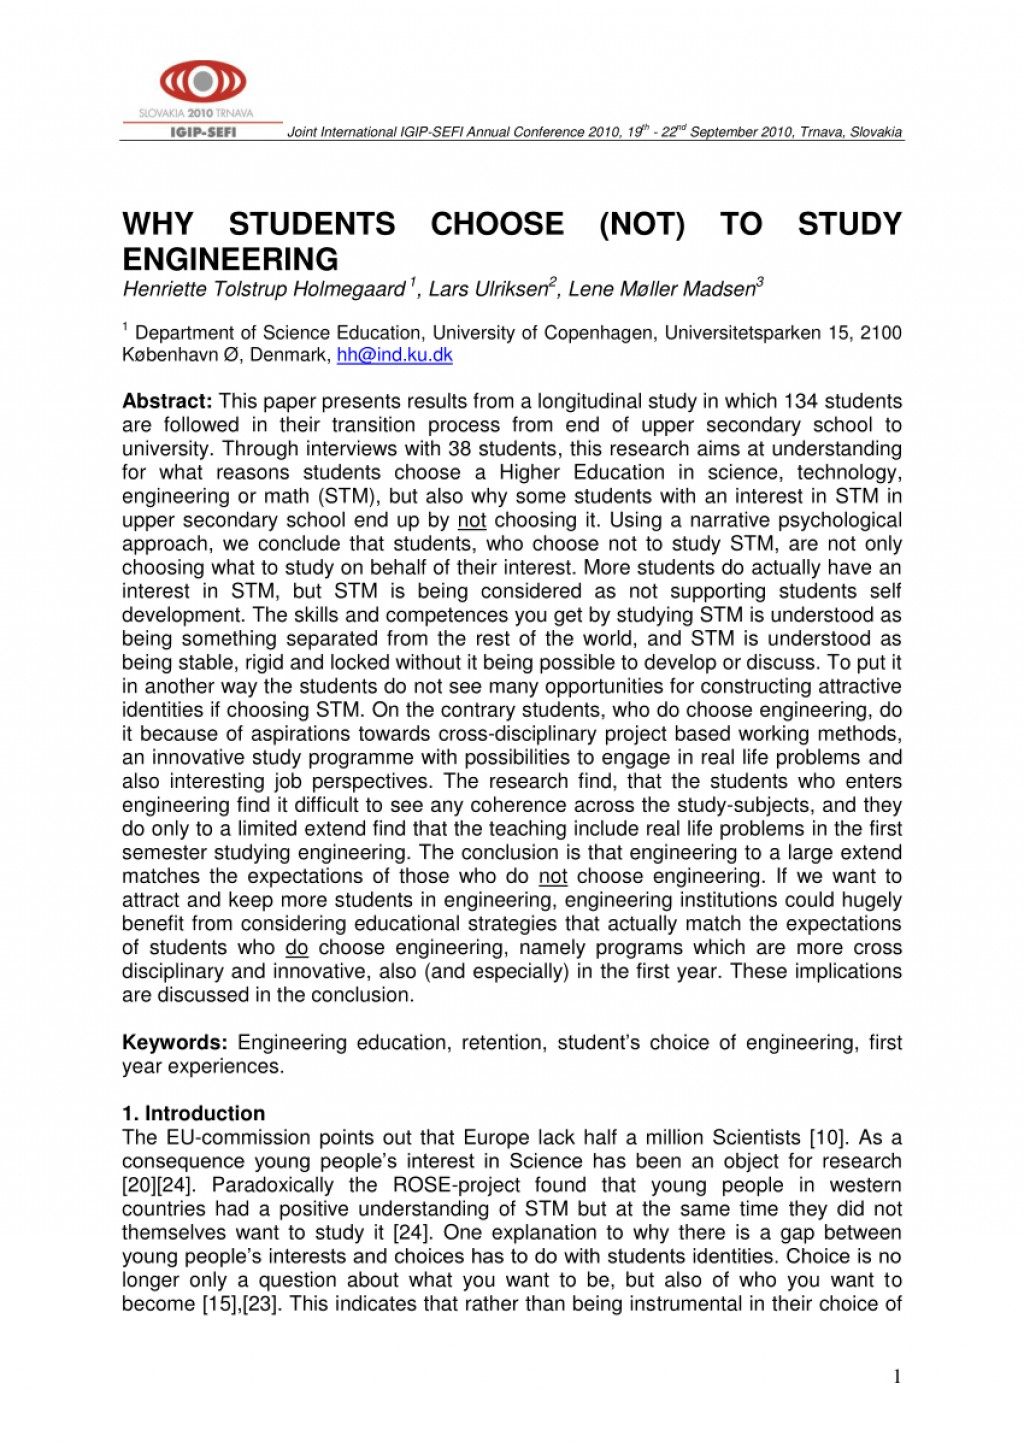 015 Engineering Essay Example Breathtaking Wvu Contest Topics Texas A&m Length Large